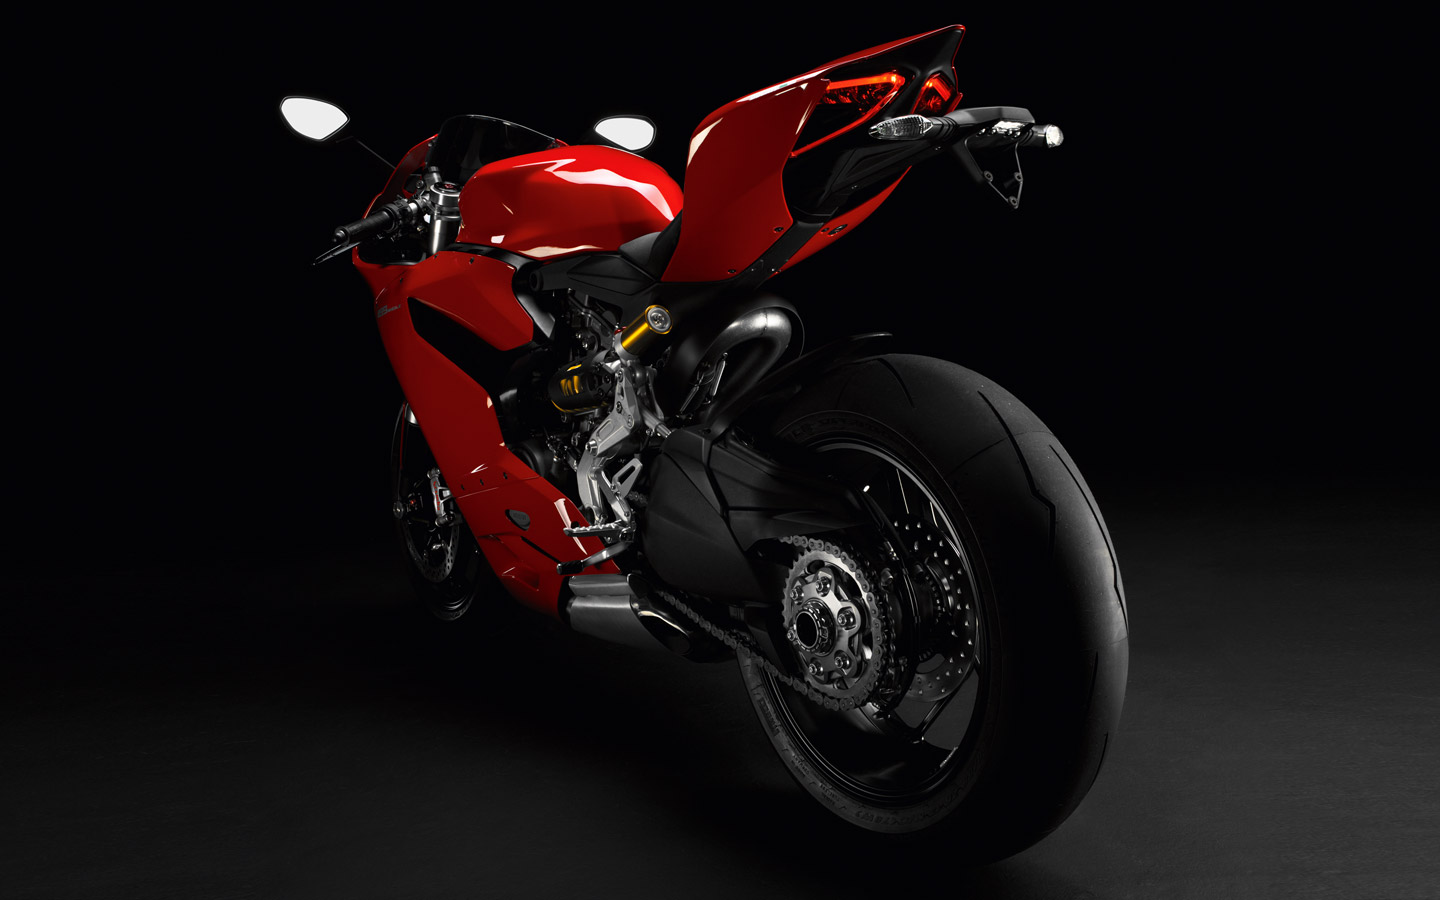 Ducati 1199 Panigale S Back View Dark Background Wallpapers